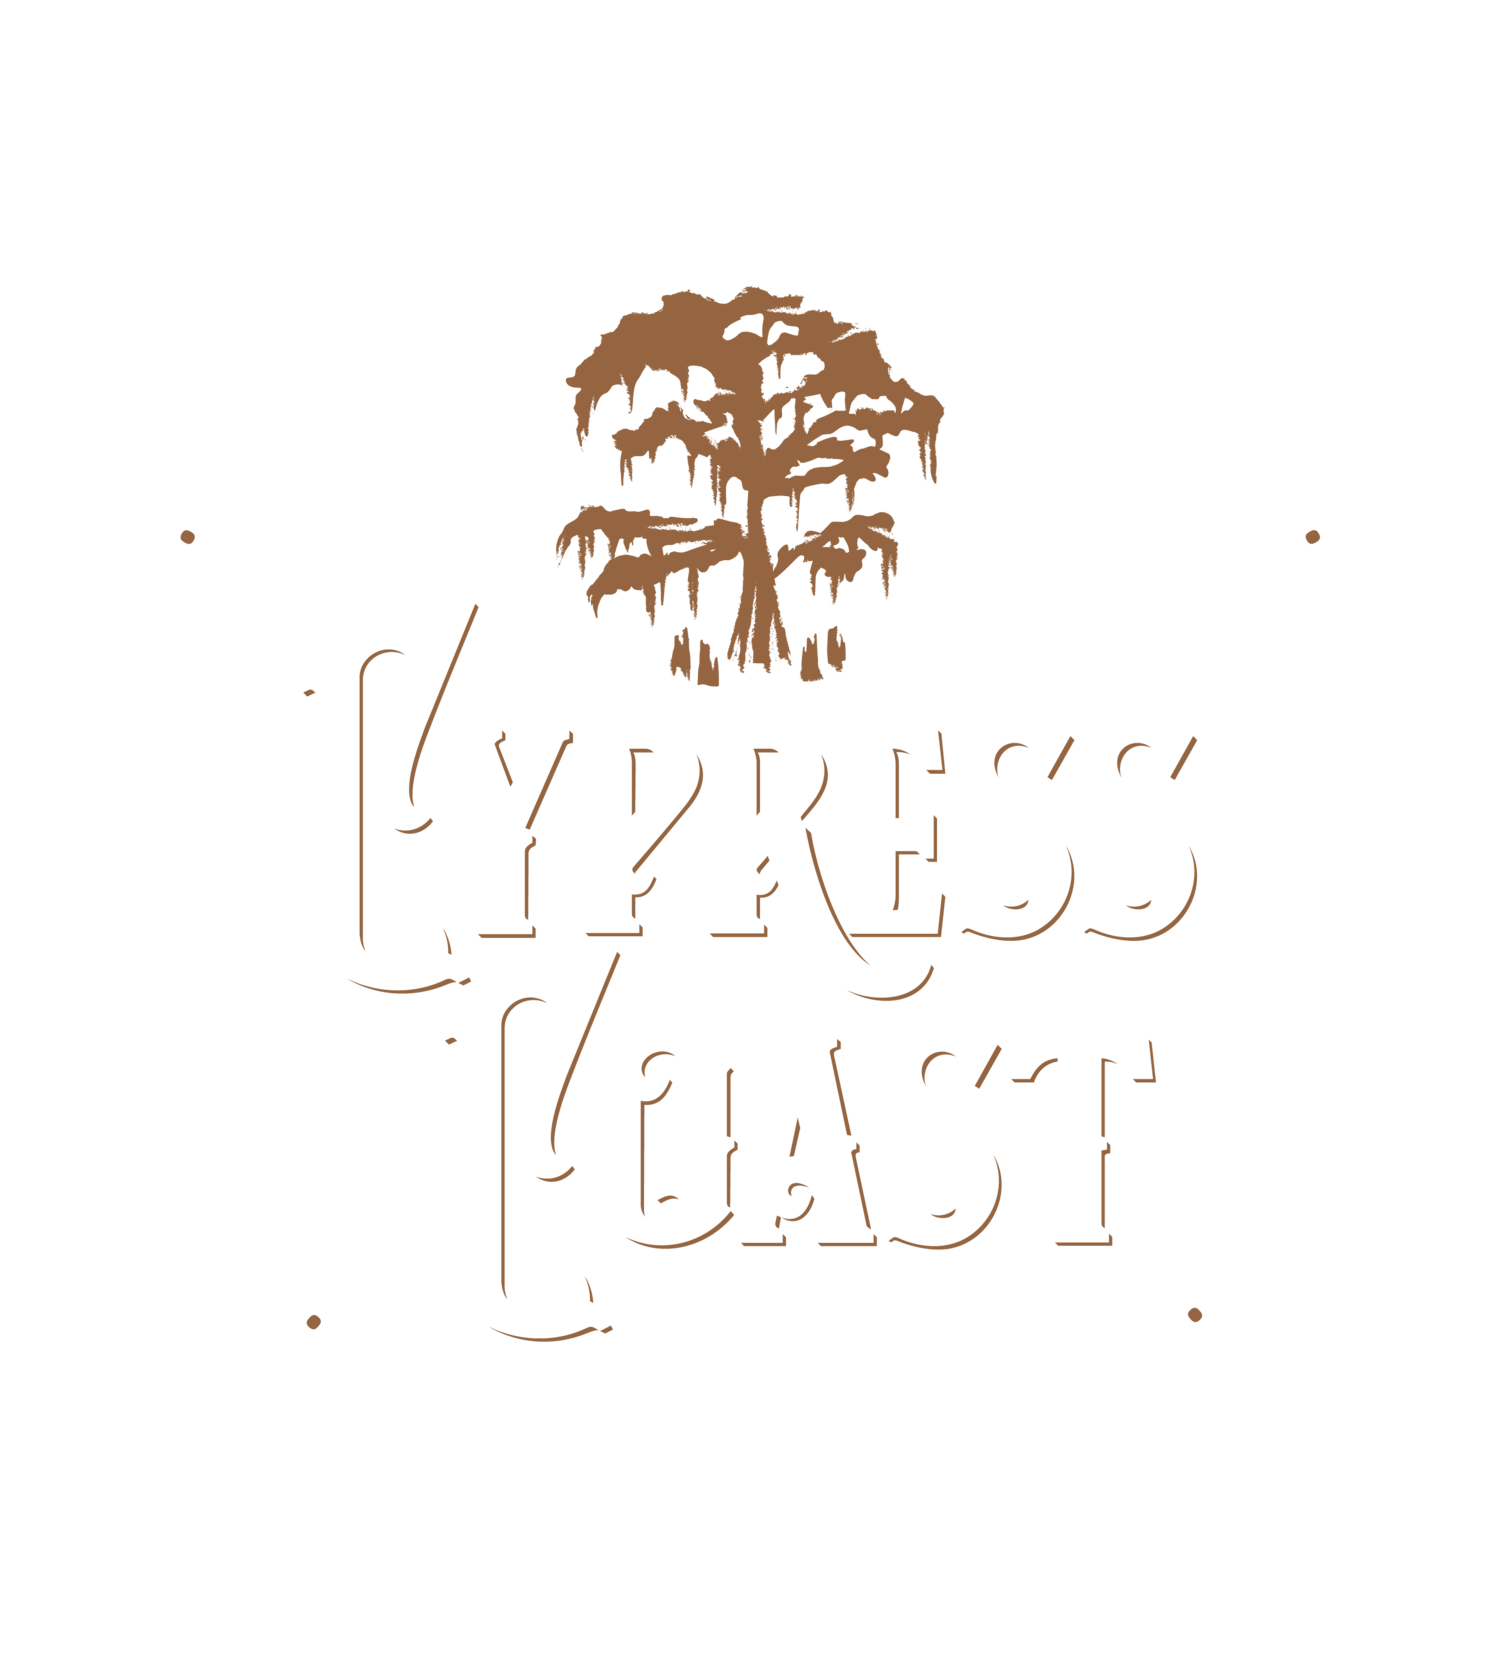 Cypress Coast Brewing